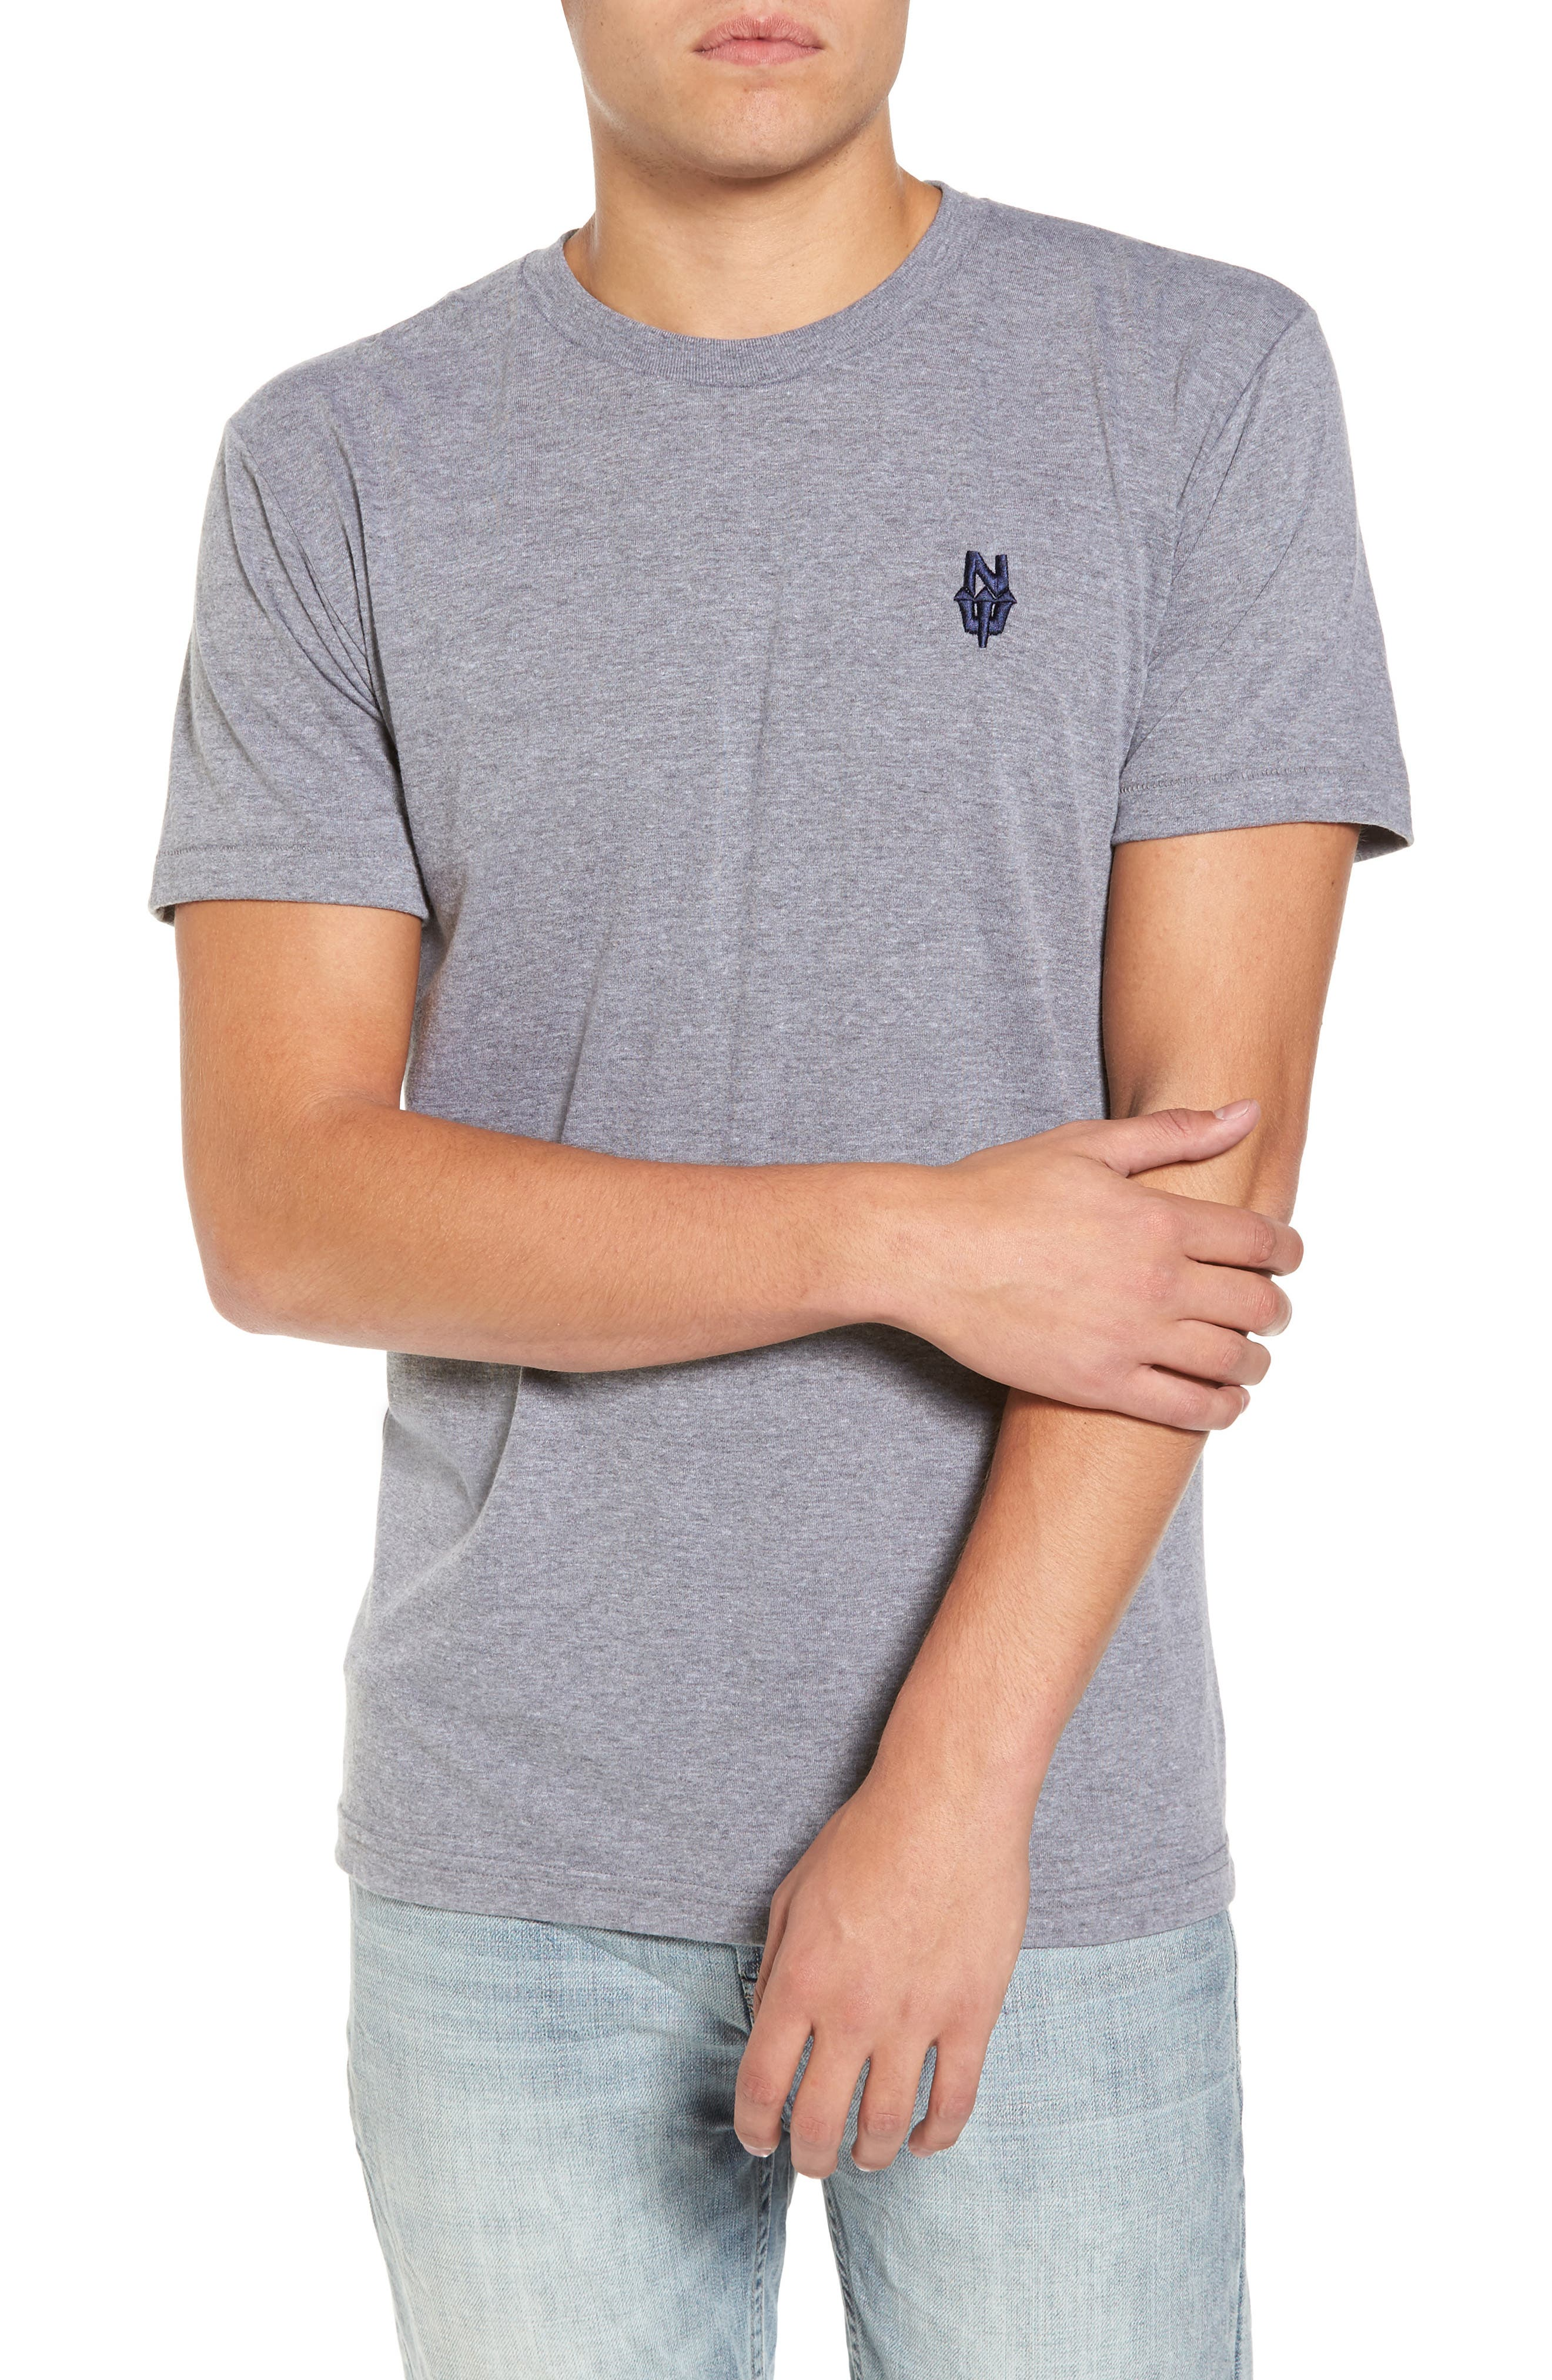 NW Trident Embroidered T-Shirt,                         Main,                         color, Grey